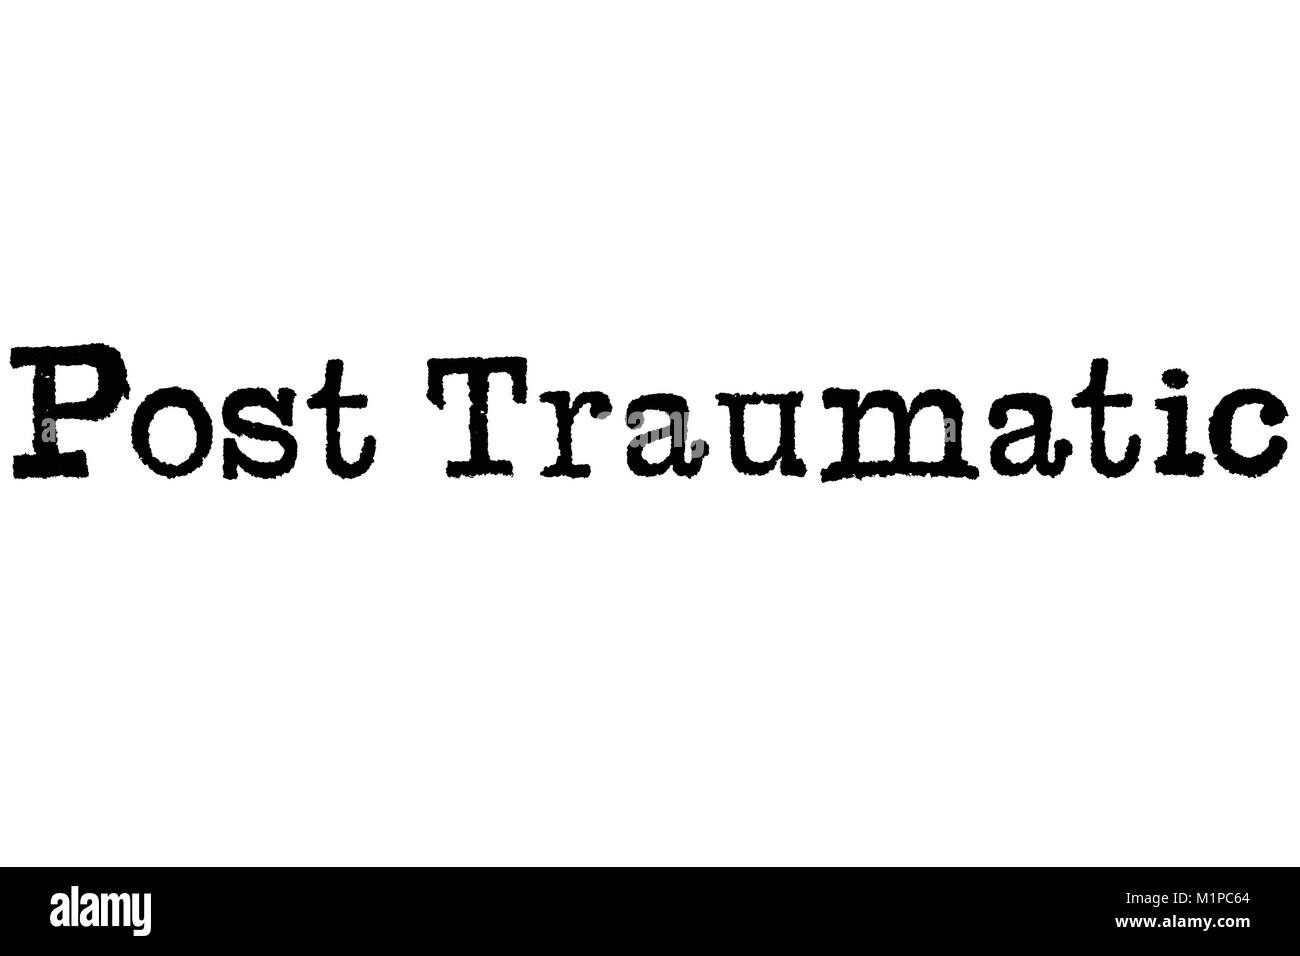 The word Post Traumatic from a typewriter on a white background - Stock Image